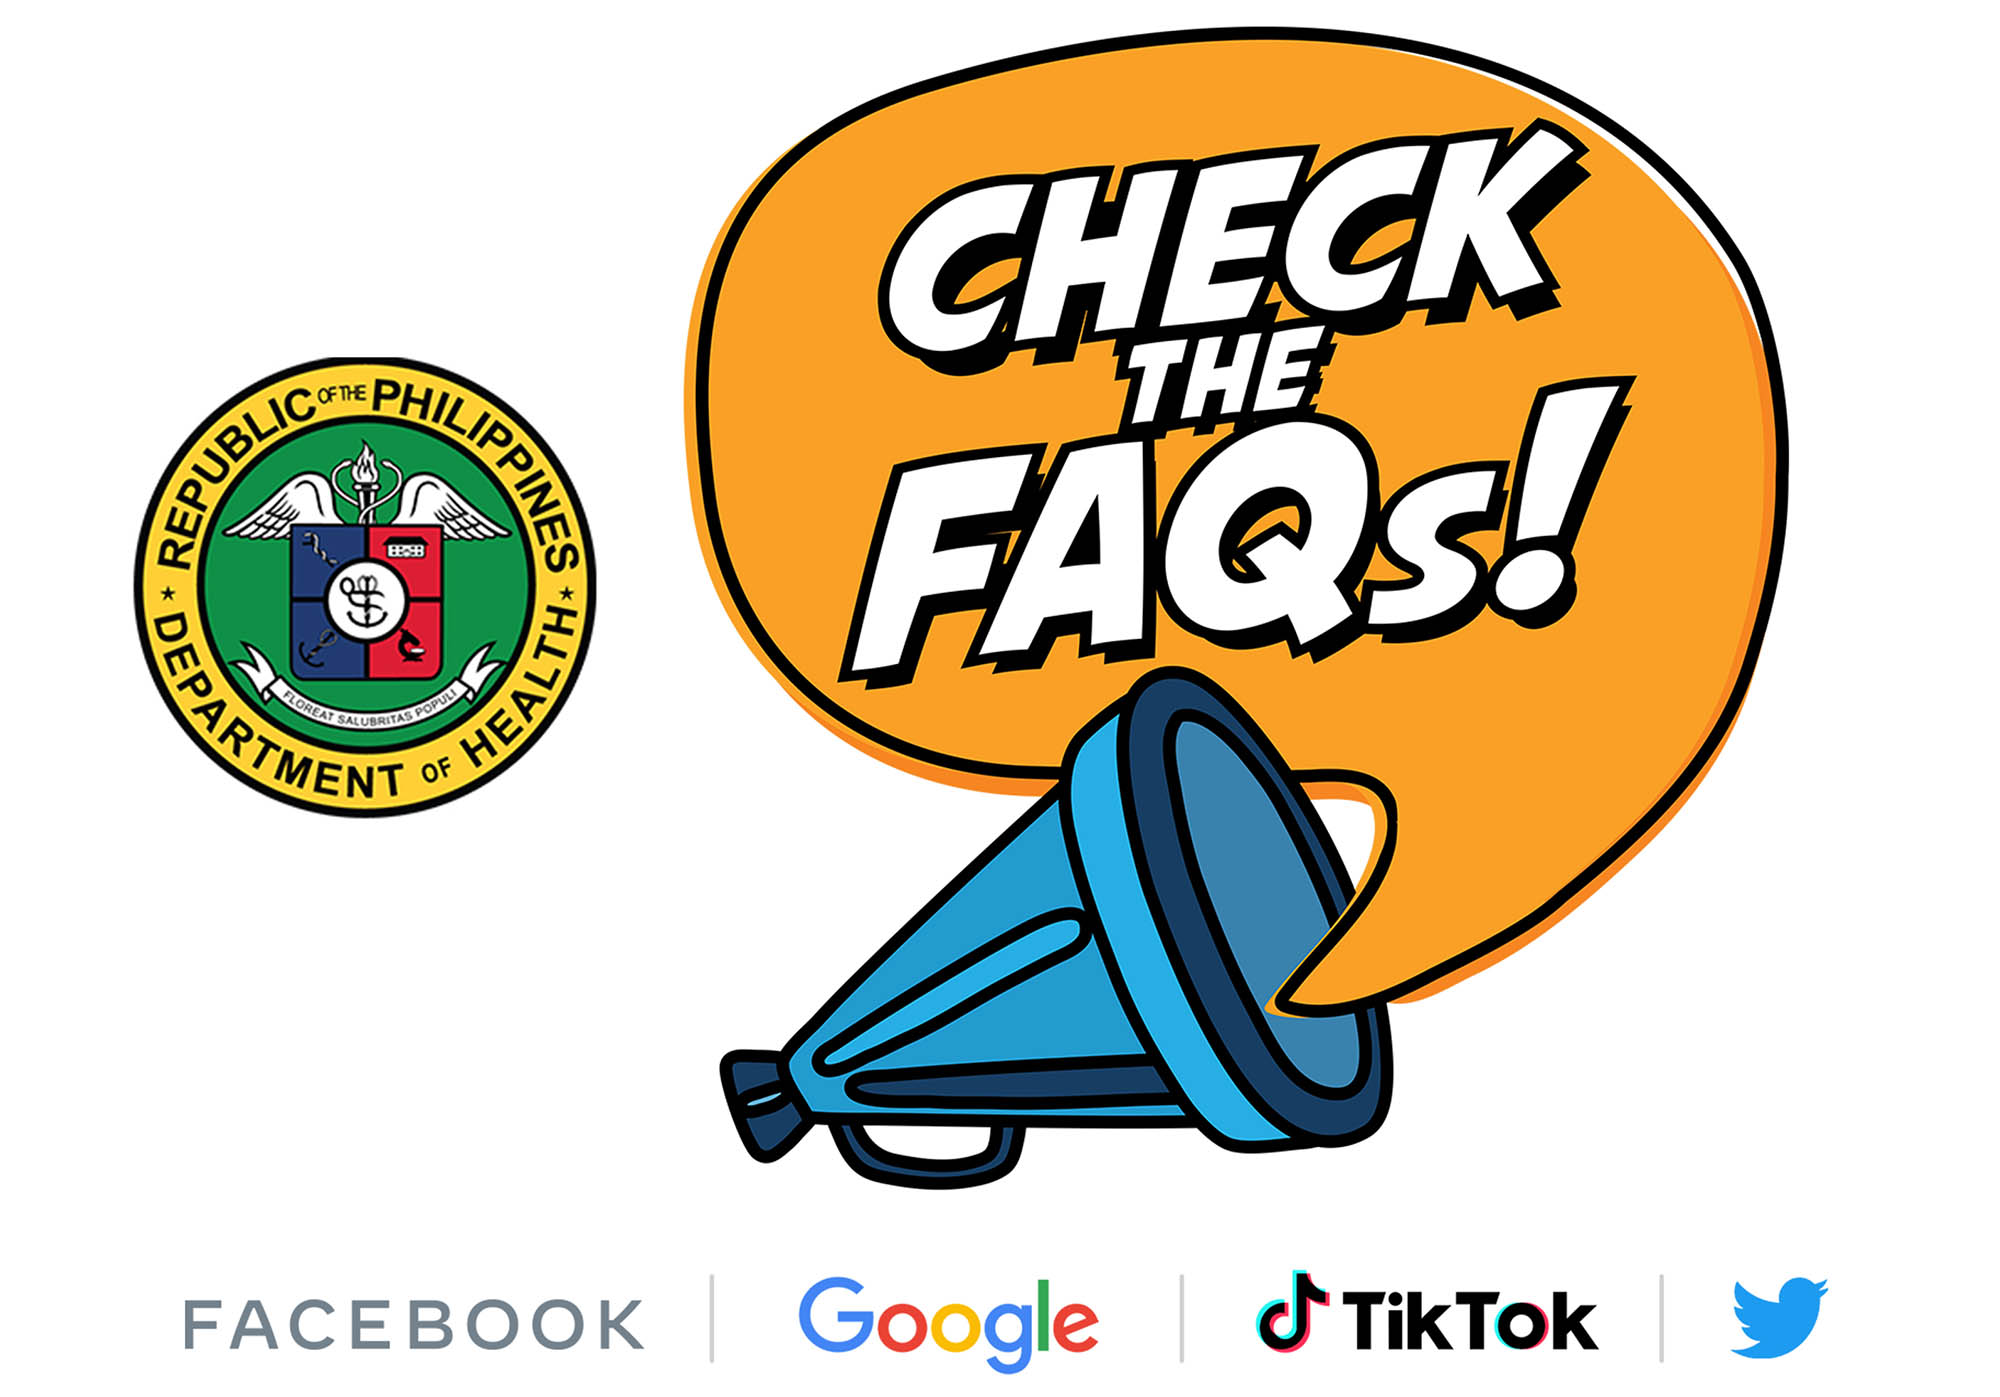 Facebook, Google, TikTok and Twitter support DOH's #ChecktheFAQs campaign to fight vaccine misinformation